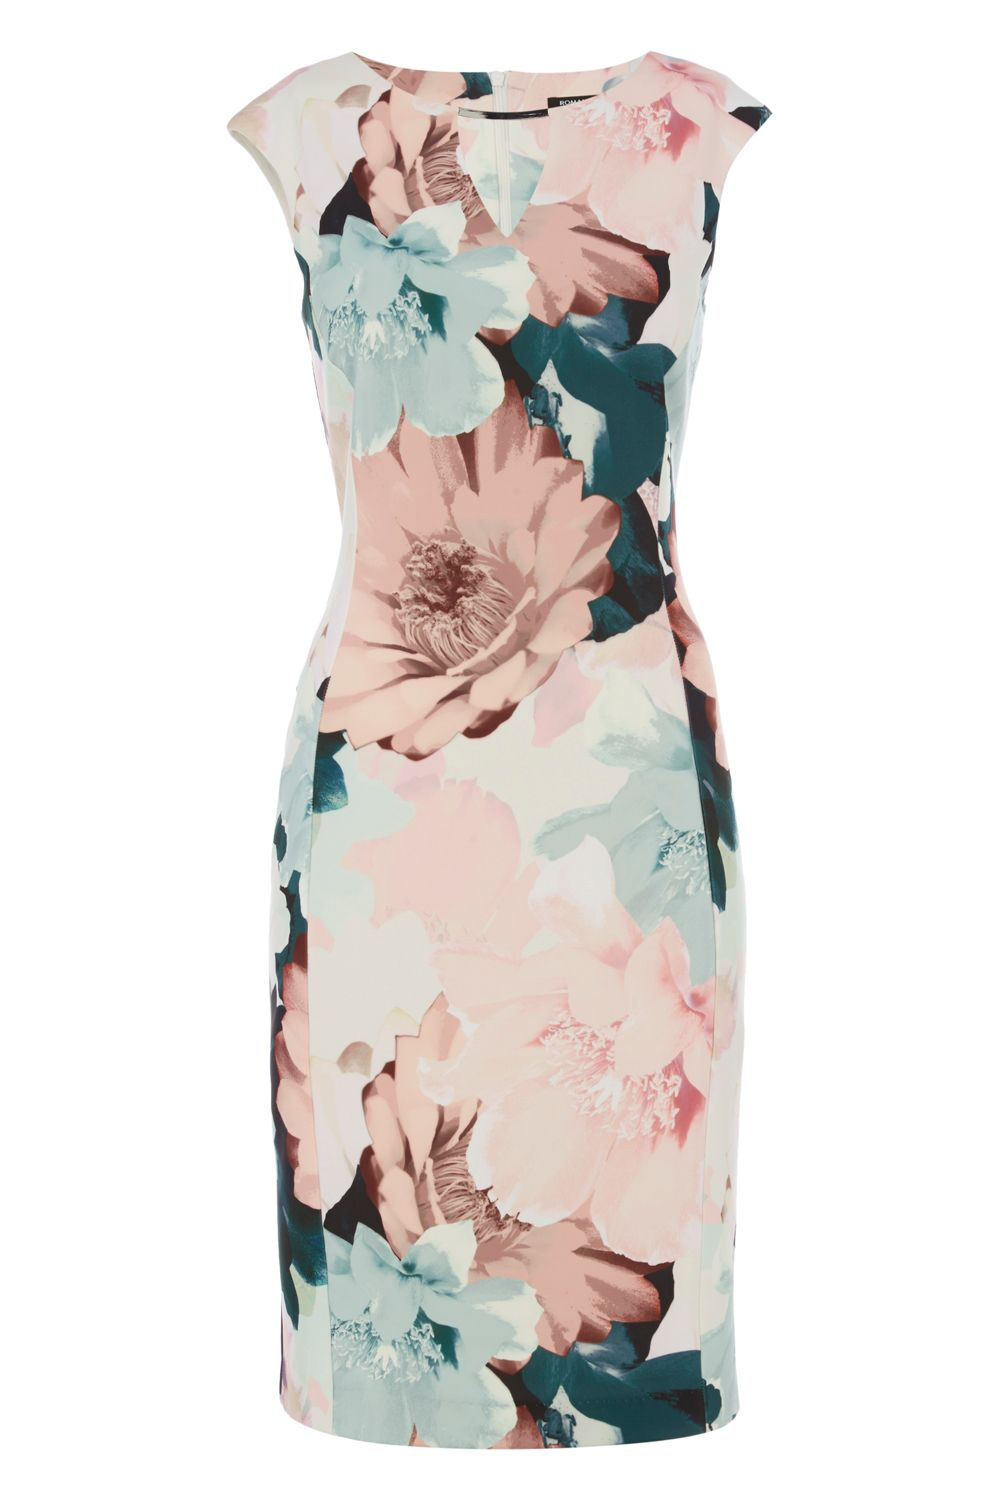 Roman Originals Pastel Floral Print Dress, Multi-Coloured